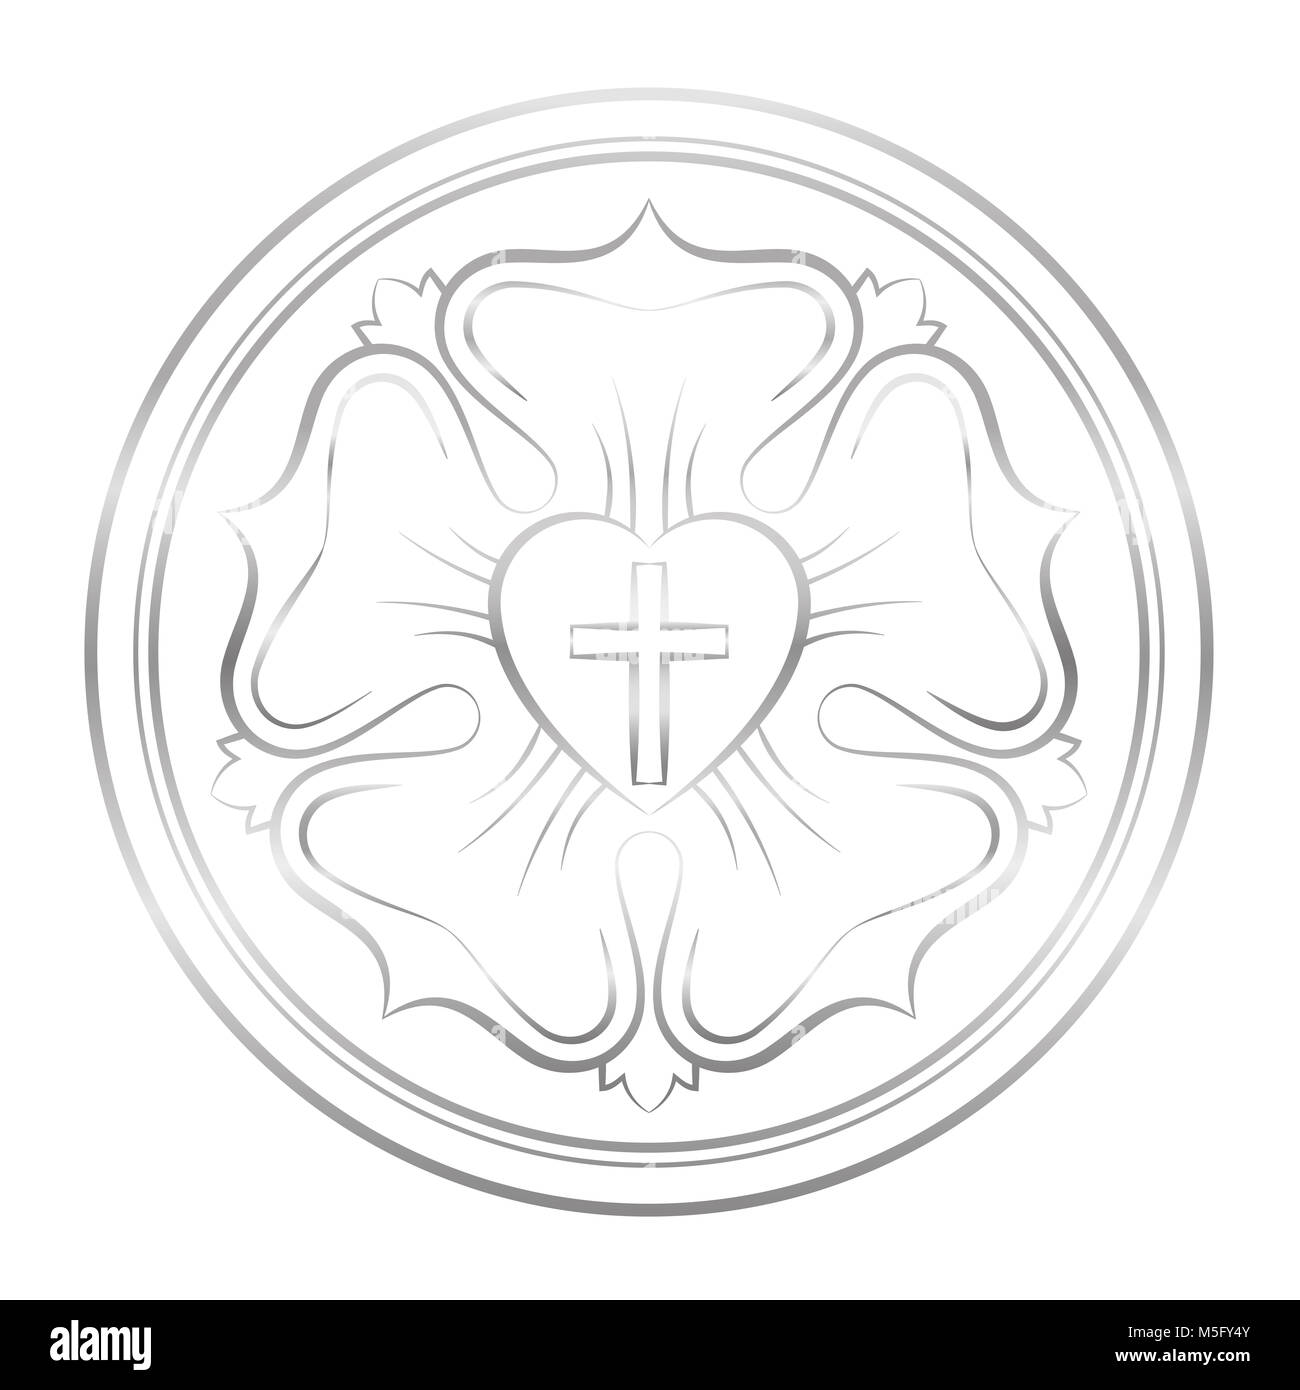 Luther symbol. Symbol of Lutheranism and protestants, consisting of a cross, a heart, a single rose and a ring  - Stock Image